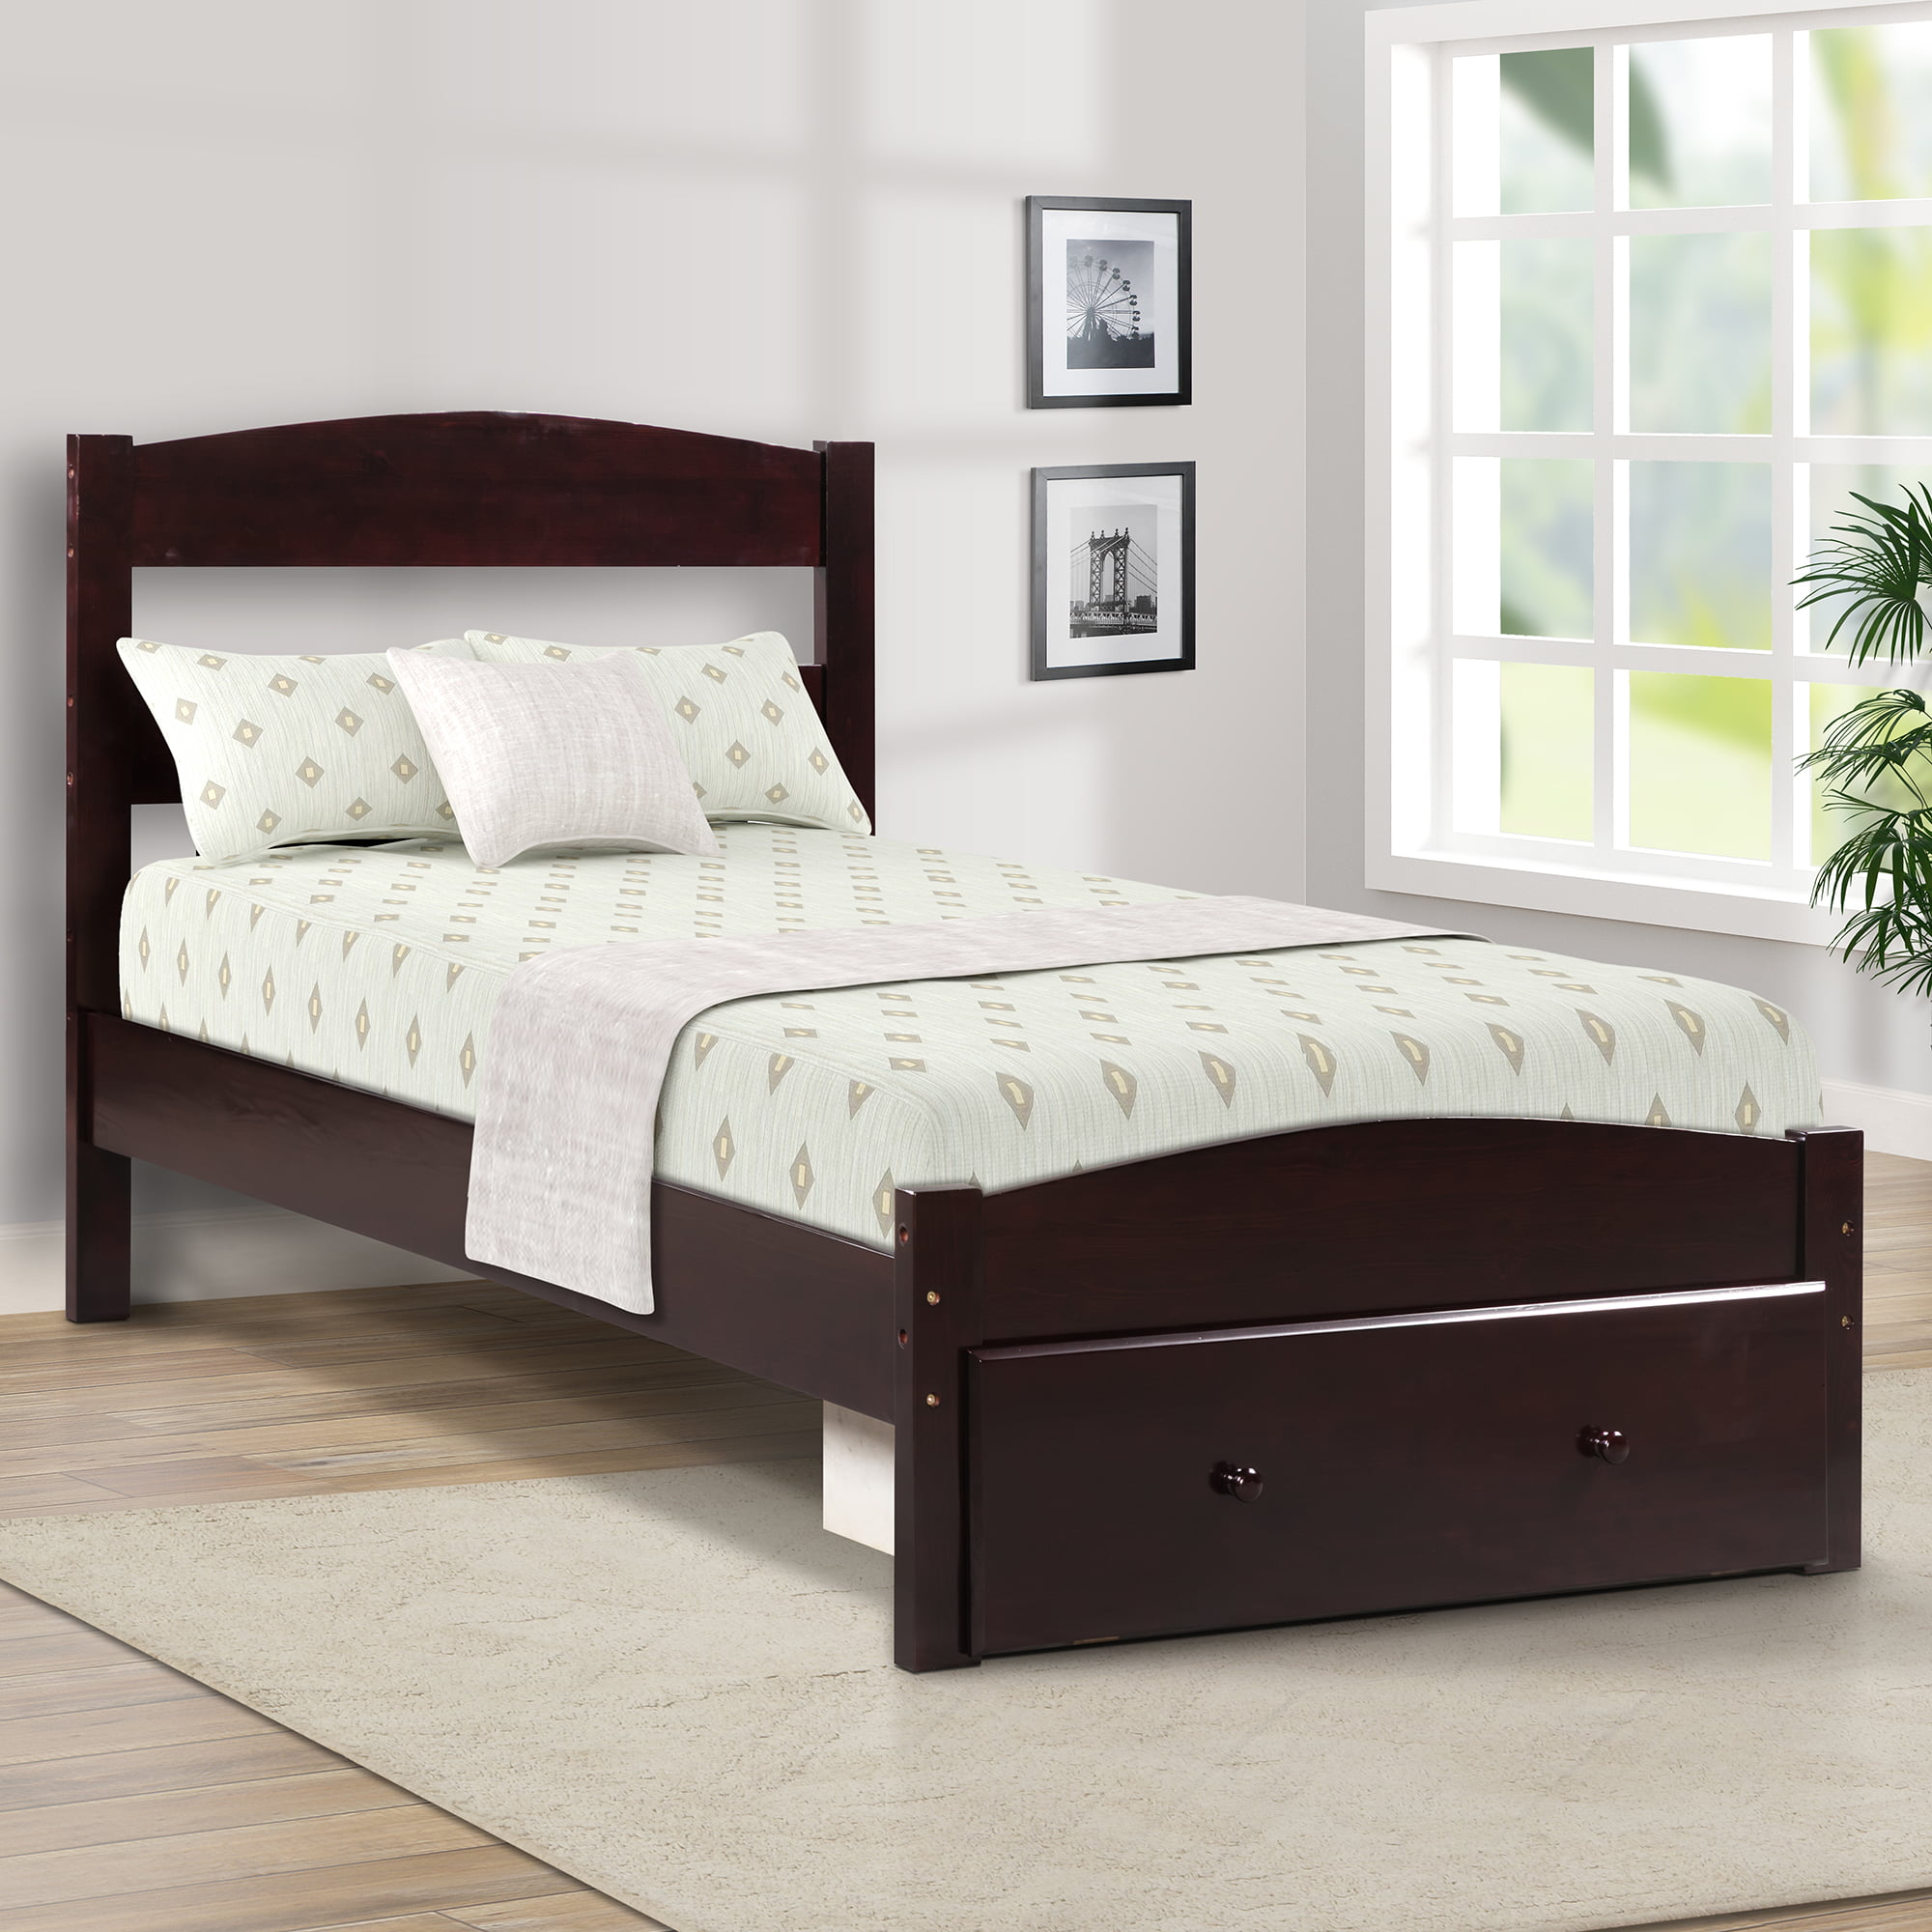 Merax Twin Size Wood Bed With Headboard And Storage Drawer